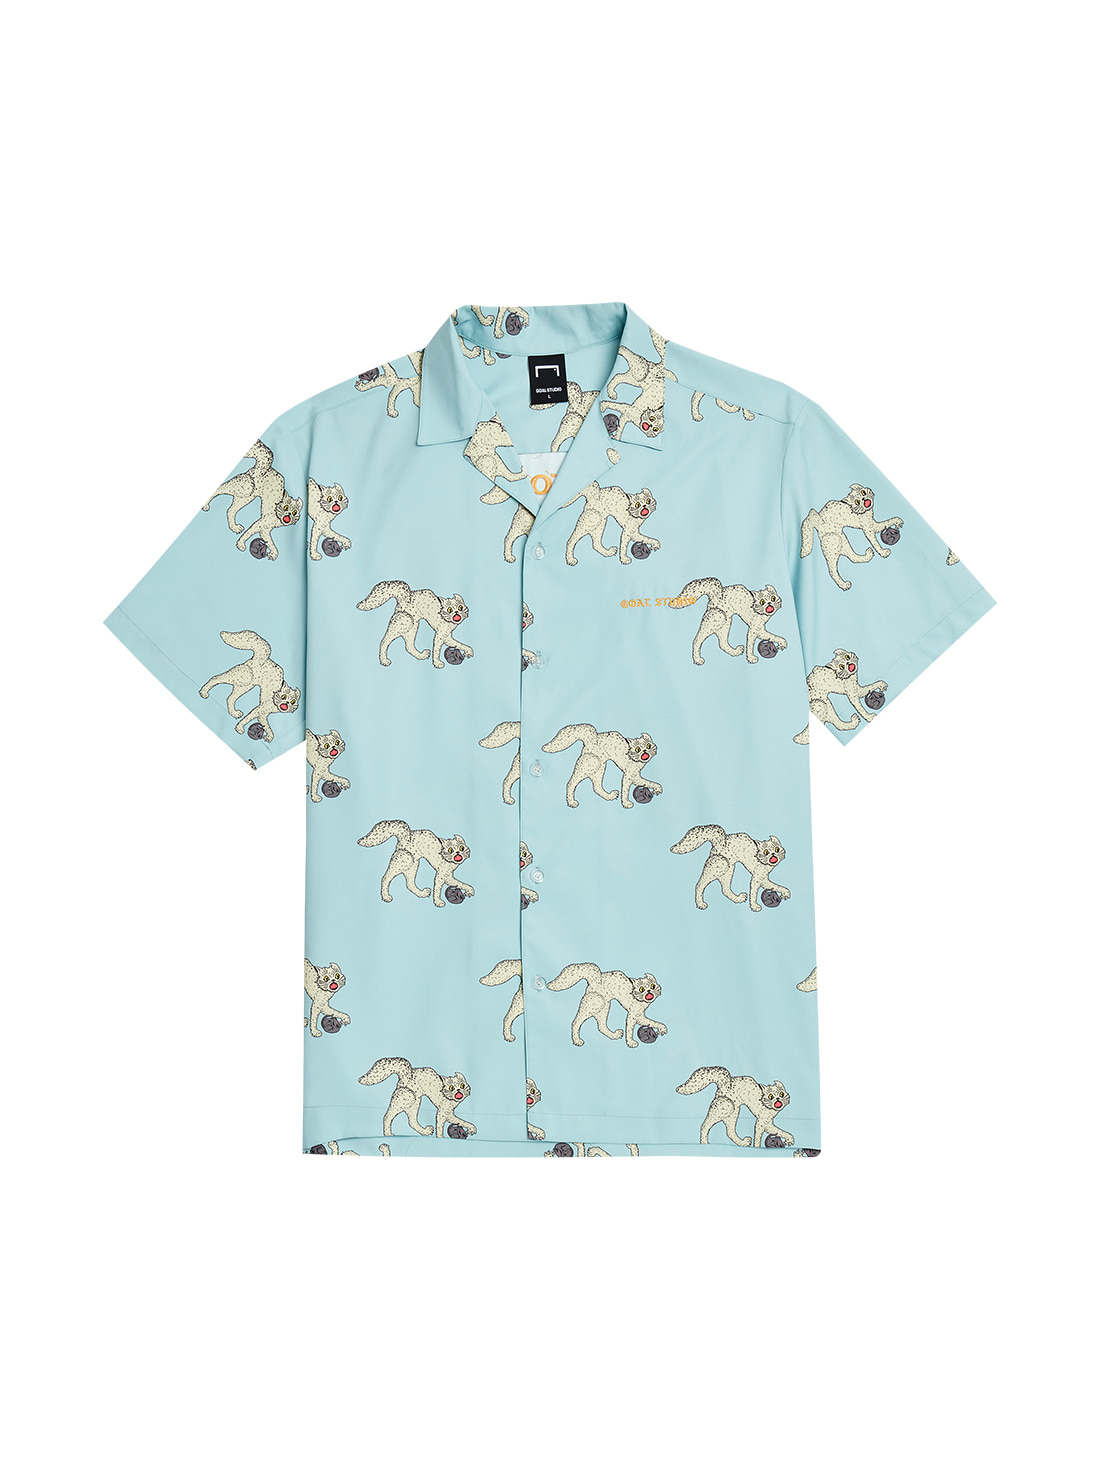 GOALSTUDIO MC ALL OVER PATTERN HALF SHIRTS - LIGHT BLUE